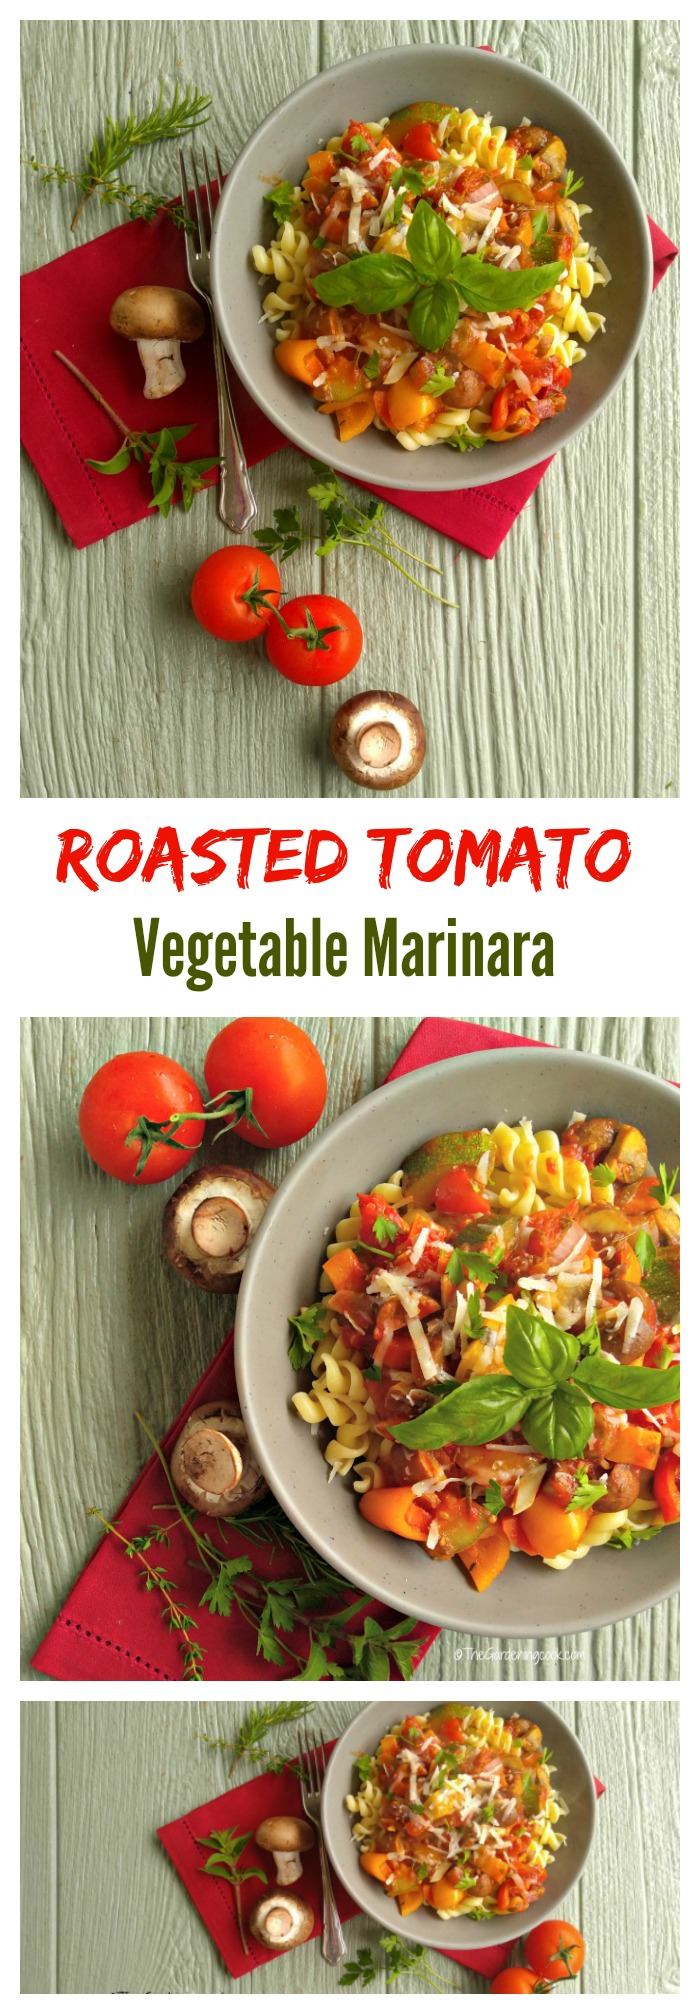 This Roasted Tomato Vegetable Marinara Sauce with Pasta is the perfect recipe for meatless Monday - thegardeningcook.com #ad #SamsClubMag